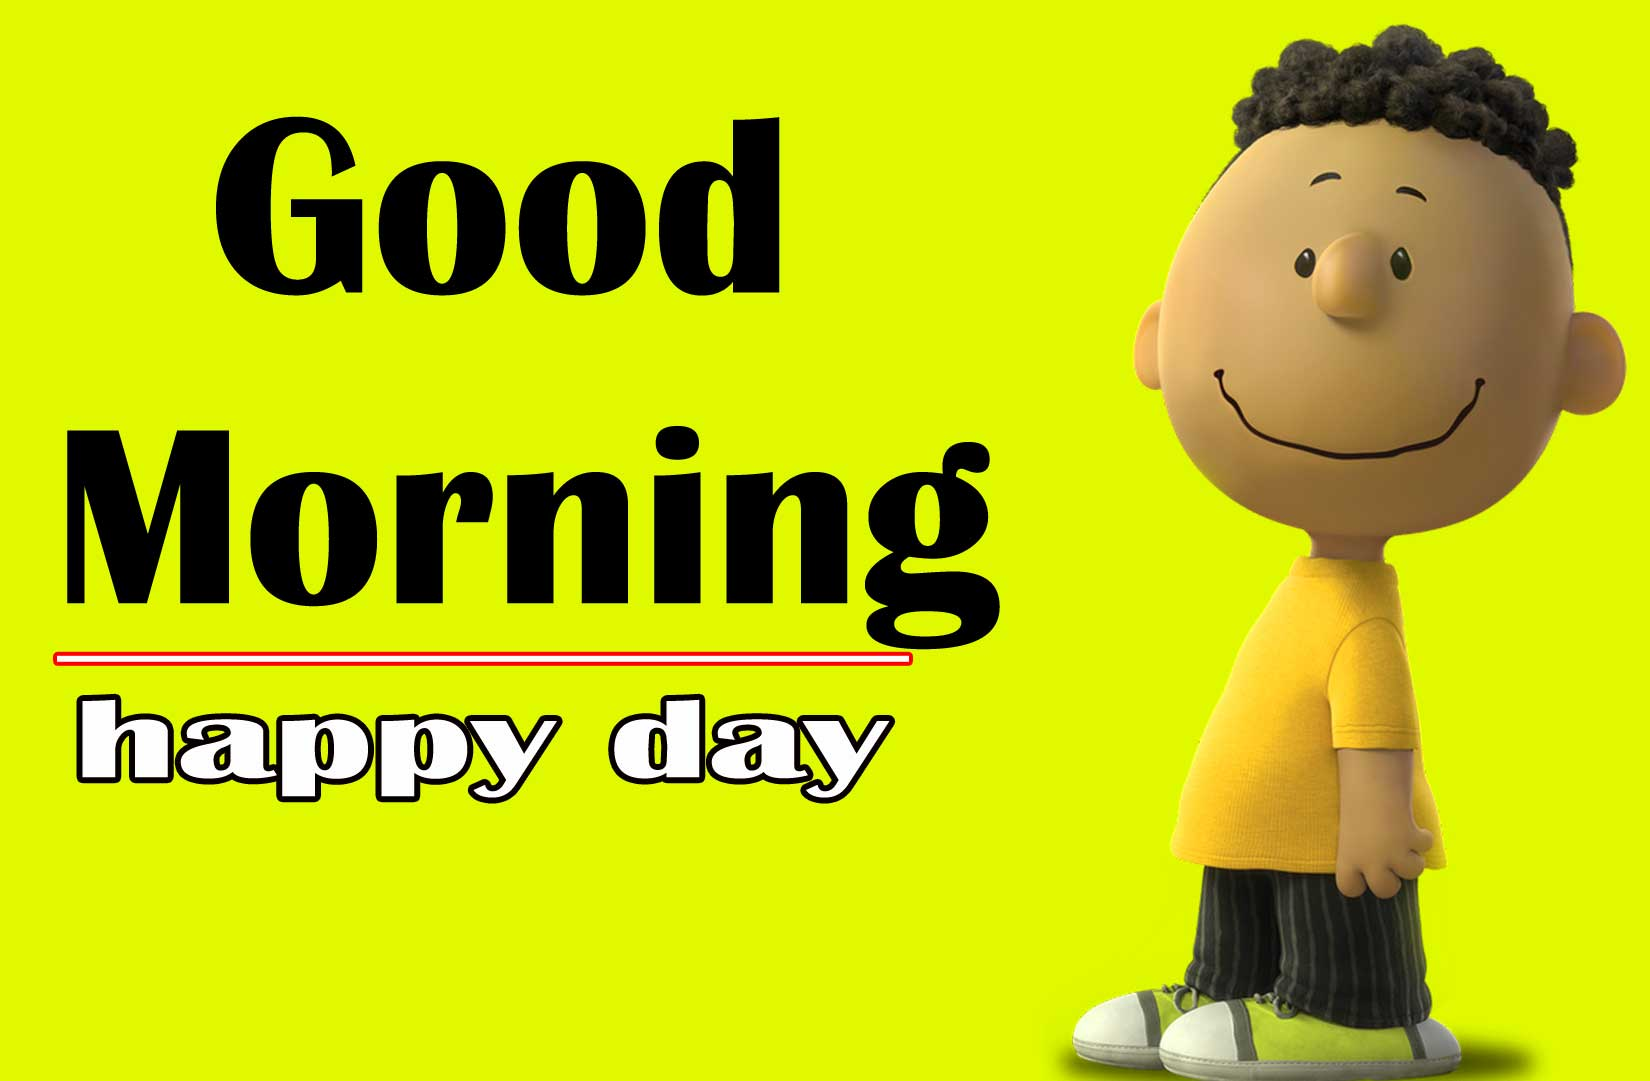 Snoopy good Morning 3